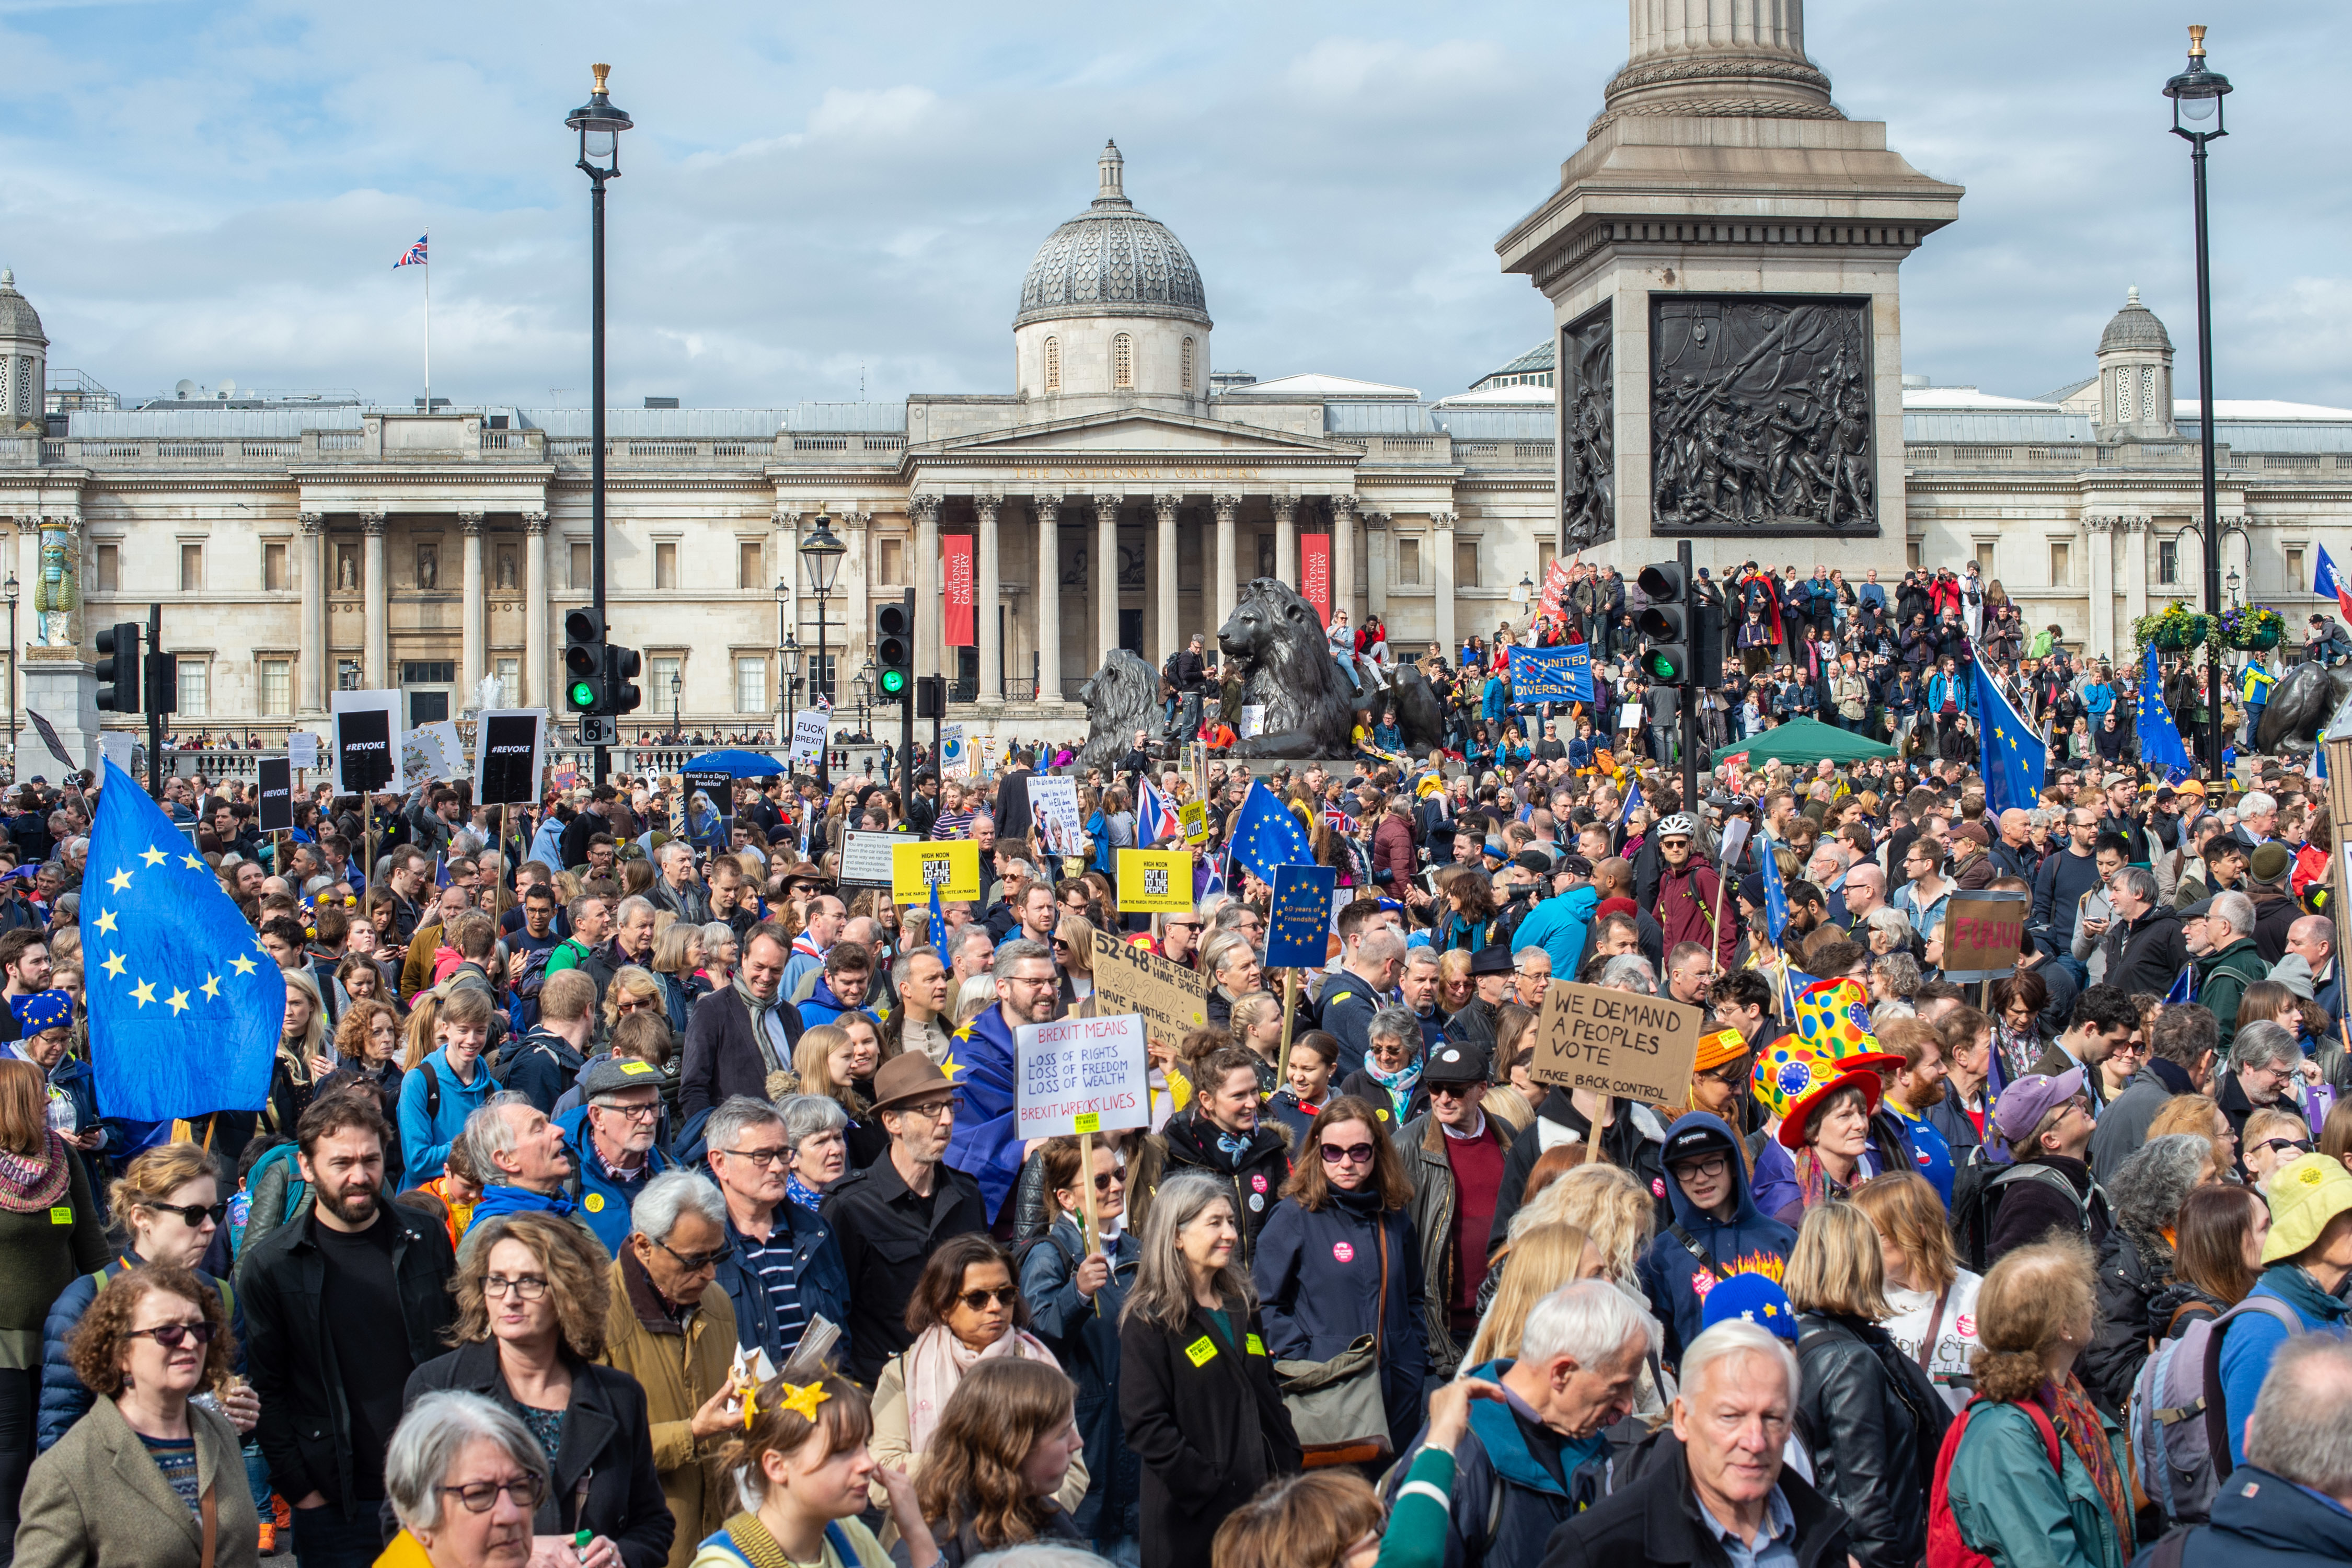 Around a million people protested in London this weekend. Credit: PA